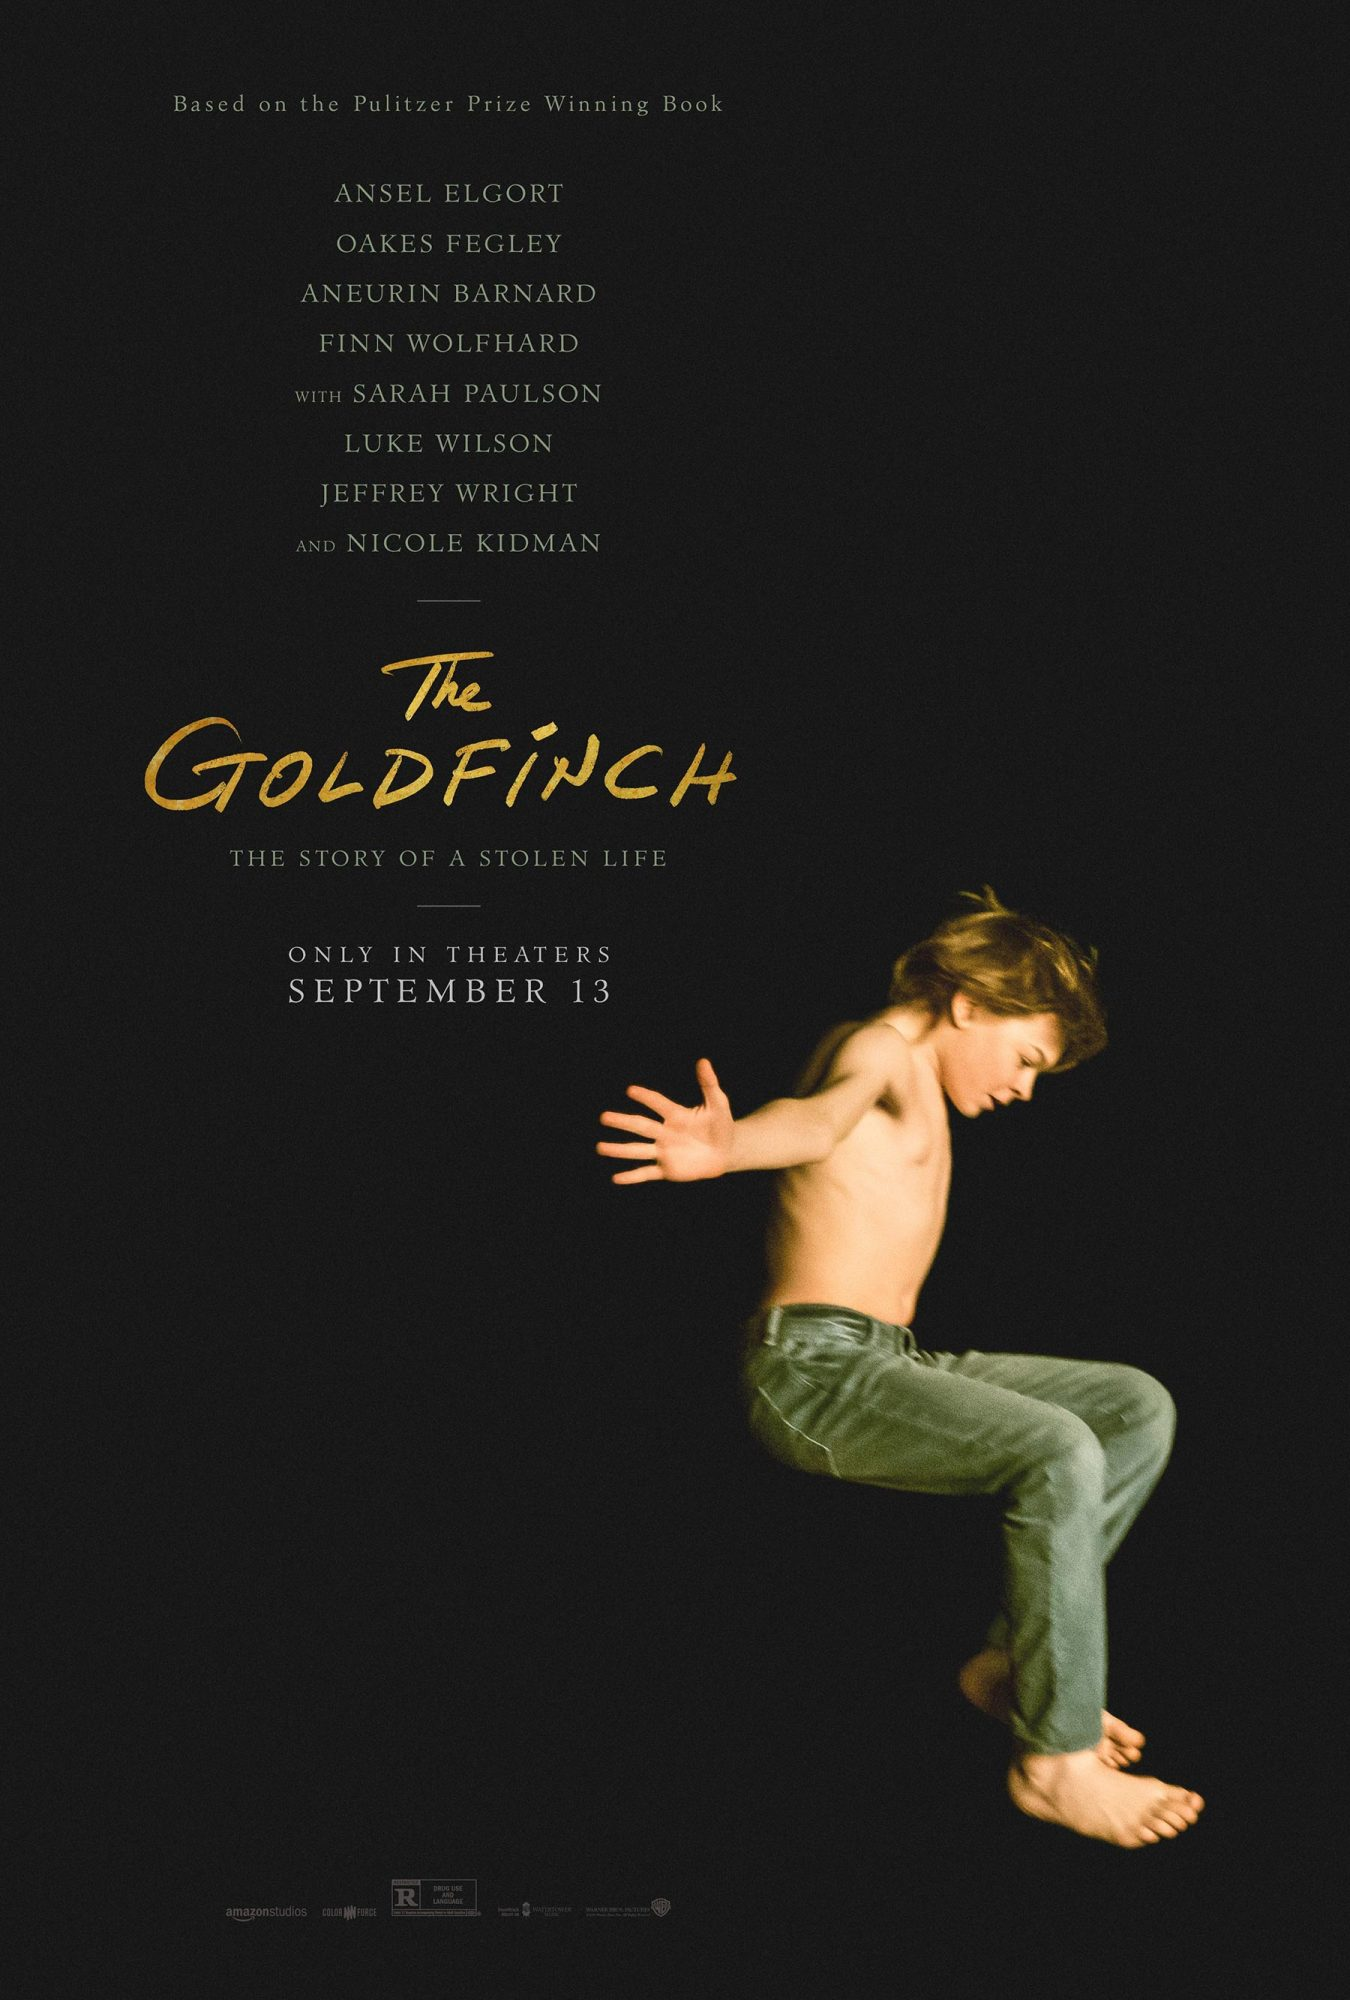 The Goldfinch movie poster CR: Warner Bros. Pictures